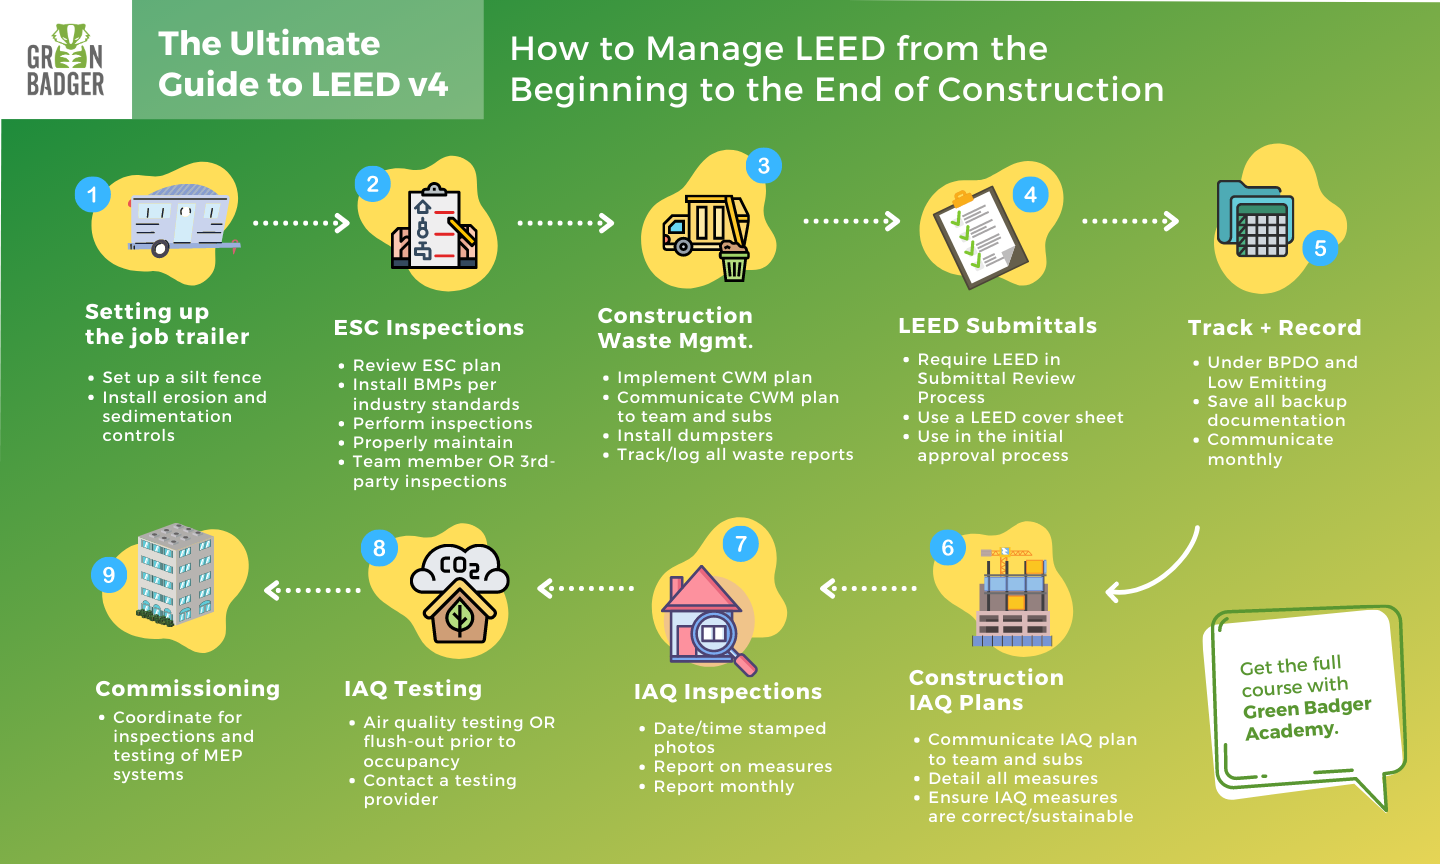 The Ultimate Guide to LEED v4